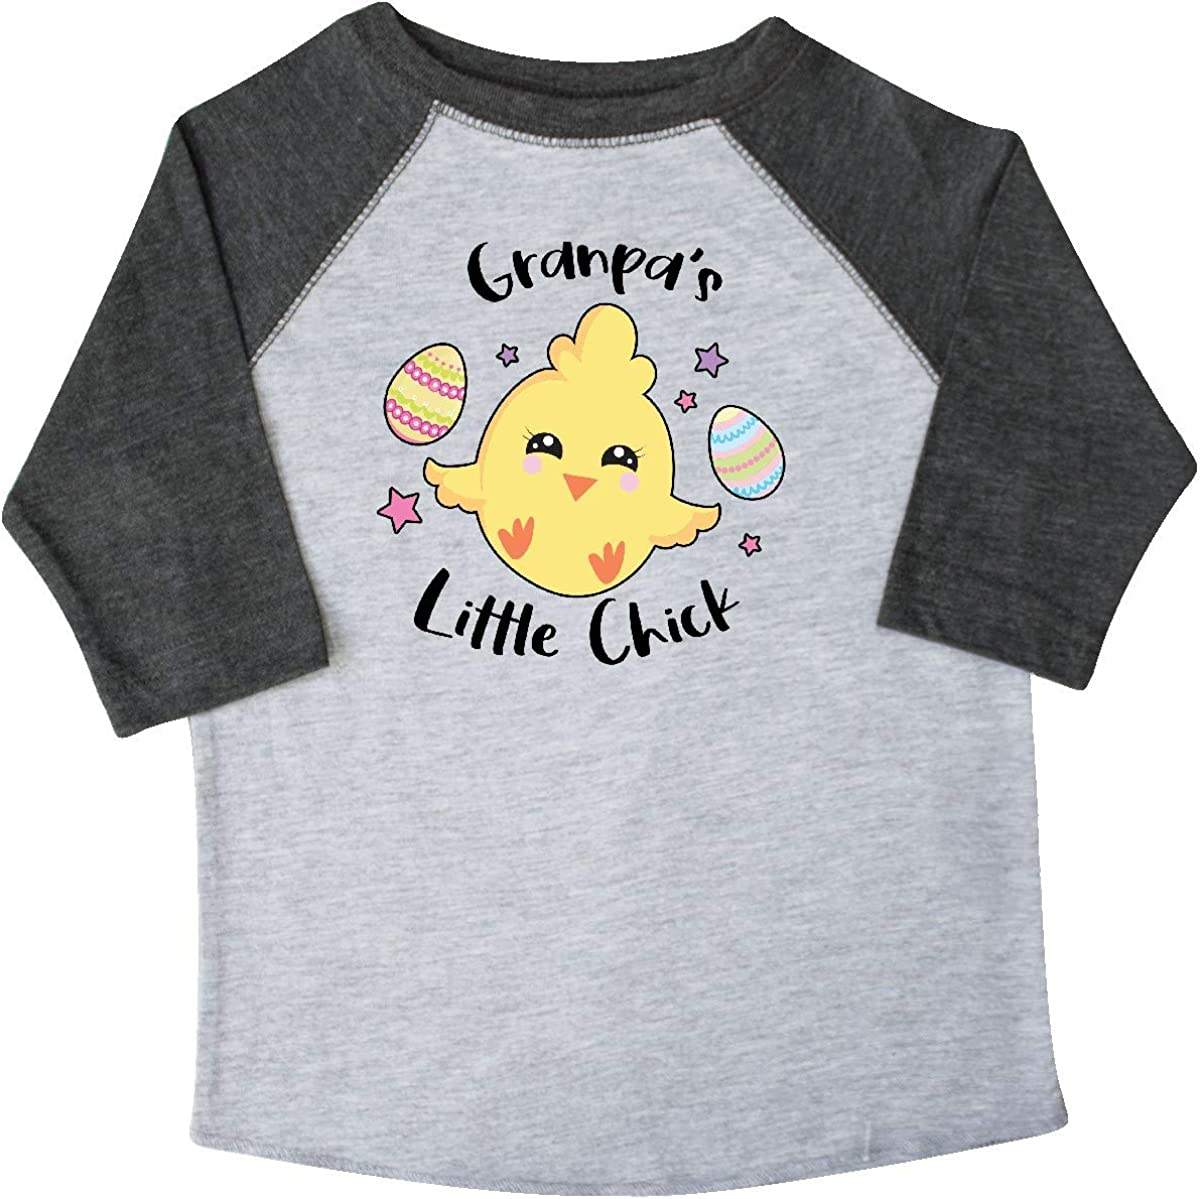 inktastic Happy Easter Granpas Little Chick Toddler T-Shirt